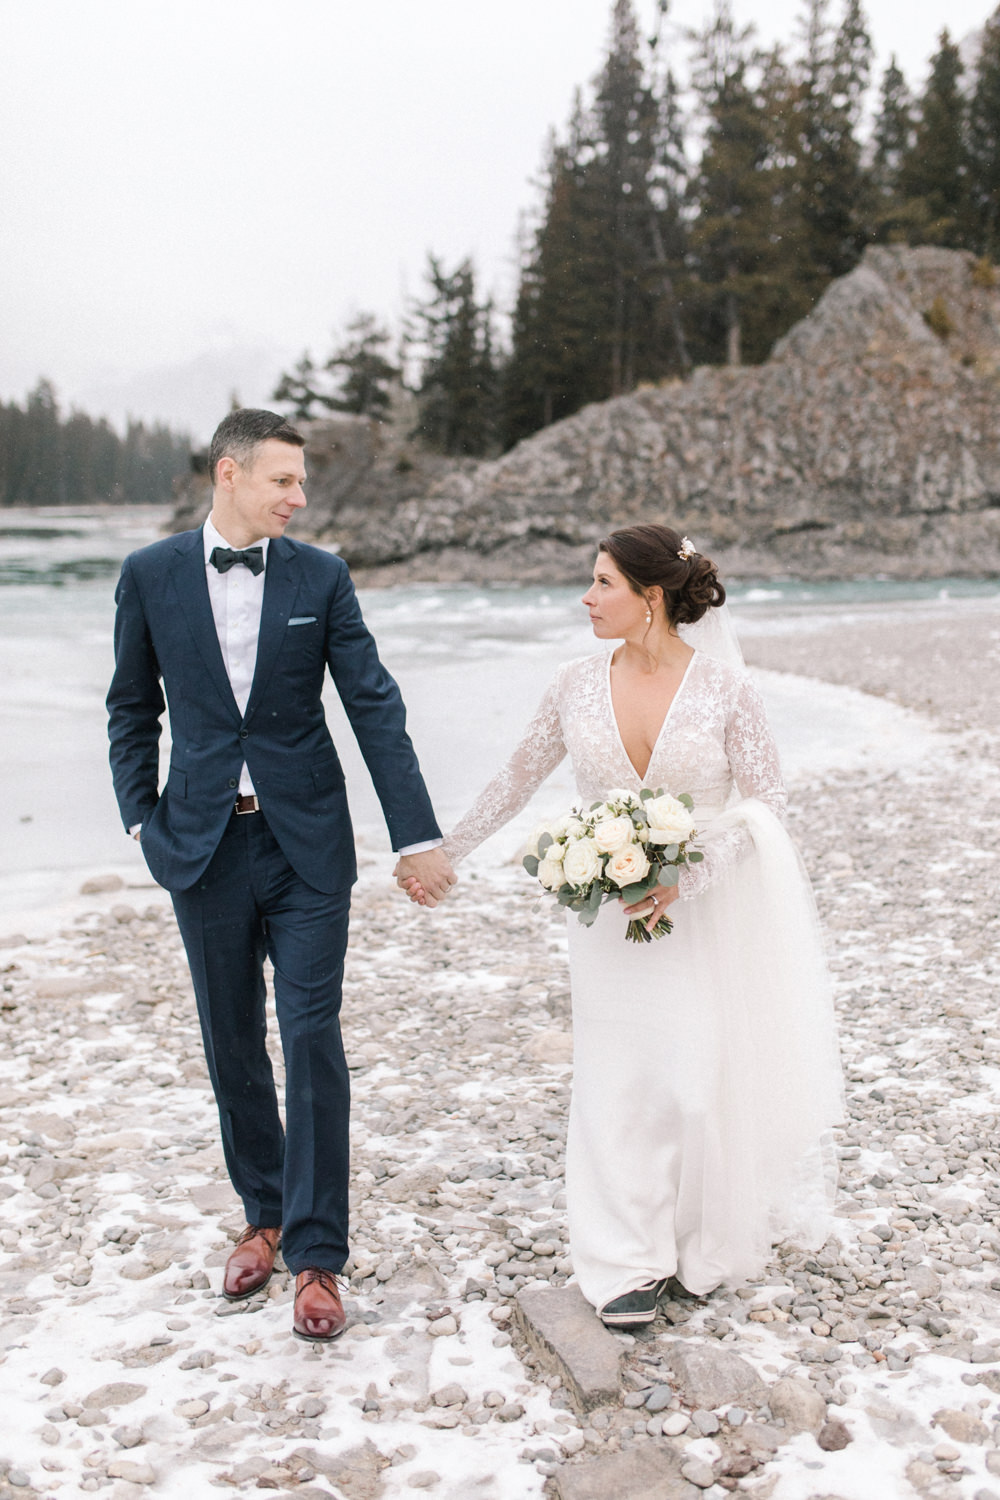 Torsten-and-Nina-at-Fairmont-banff-springs-Lynn-fletcher-weddings-87.jpg